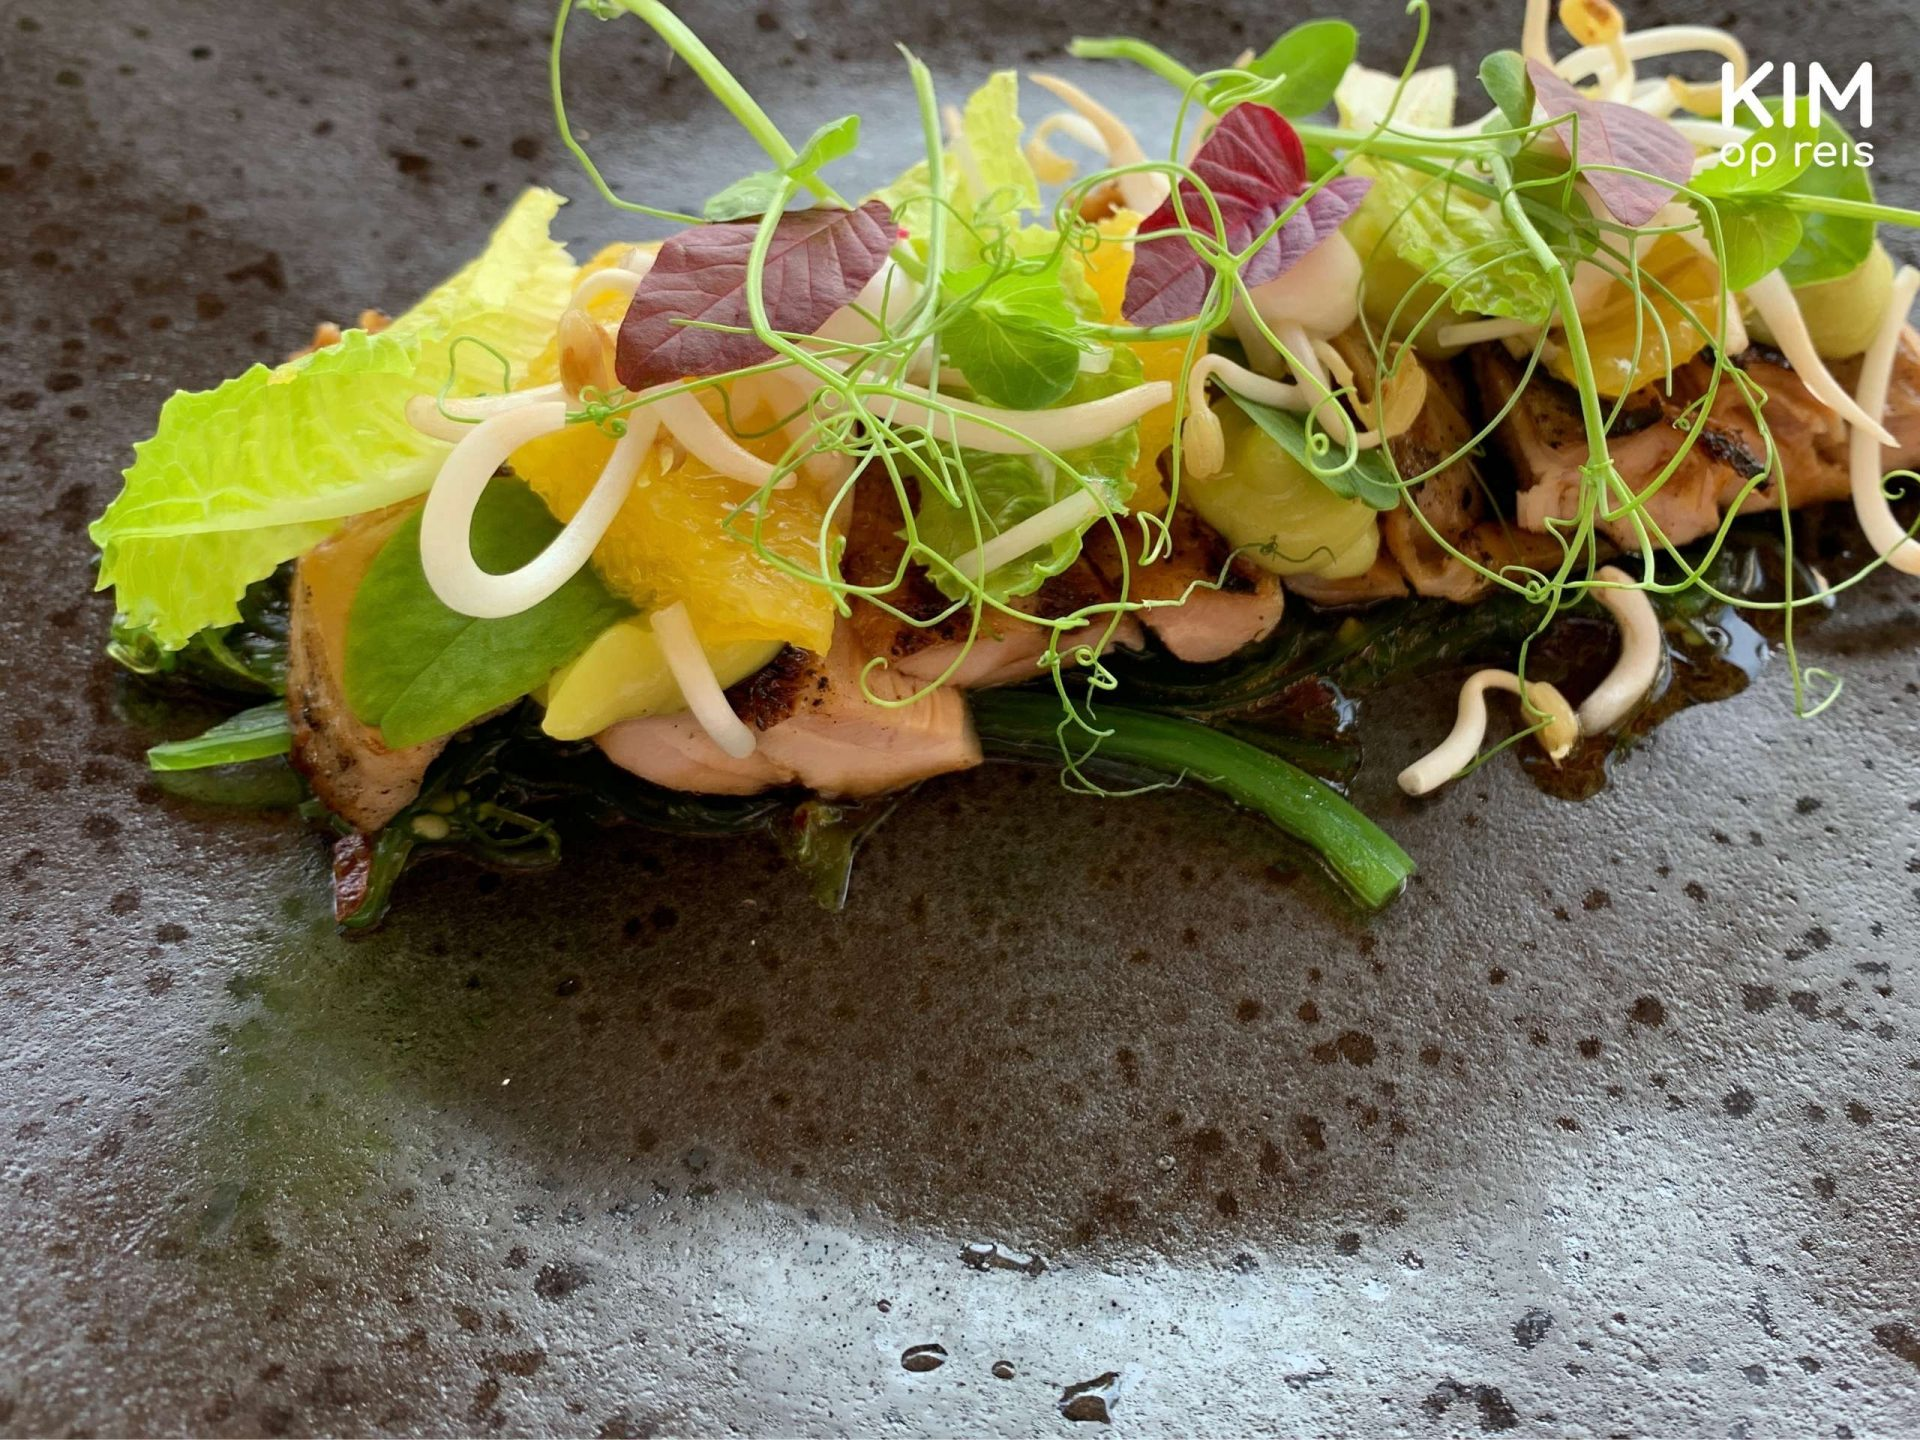 Baoase restaurant Curaçao: work of art of food on a gray plate